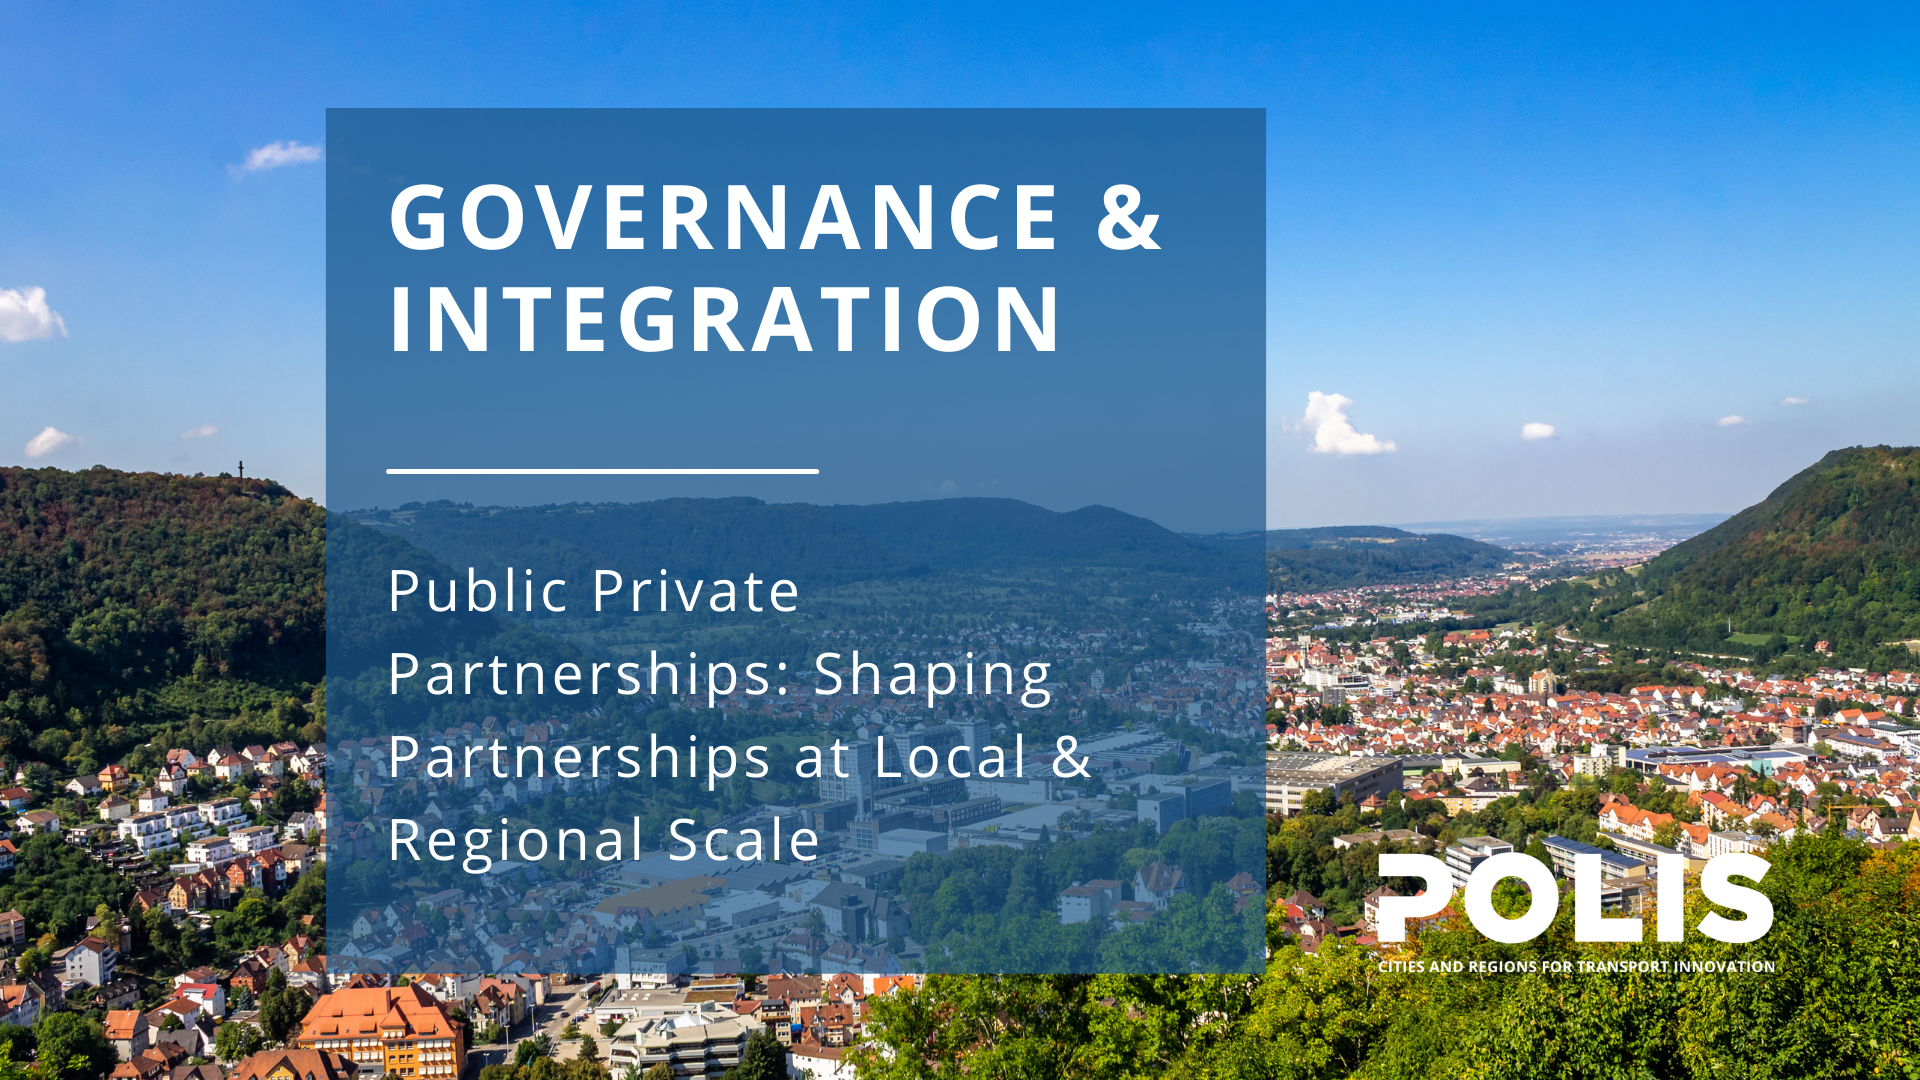 Public Private Partnerships: Local & Regional Scales